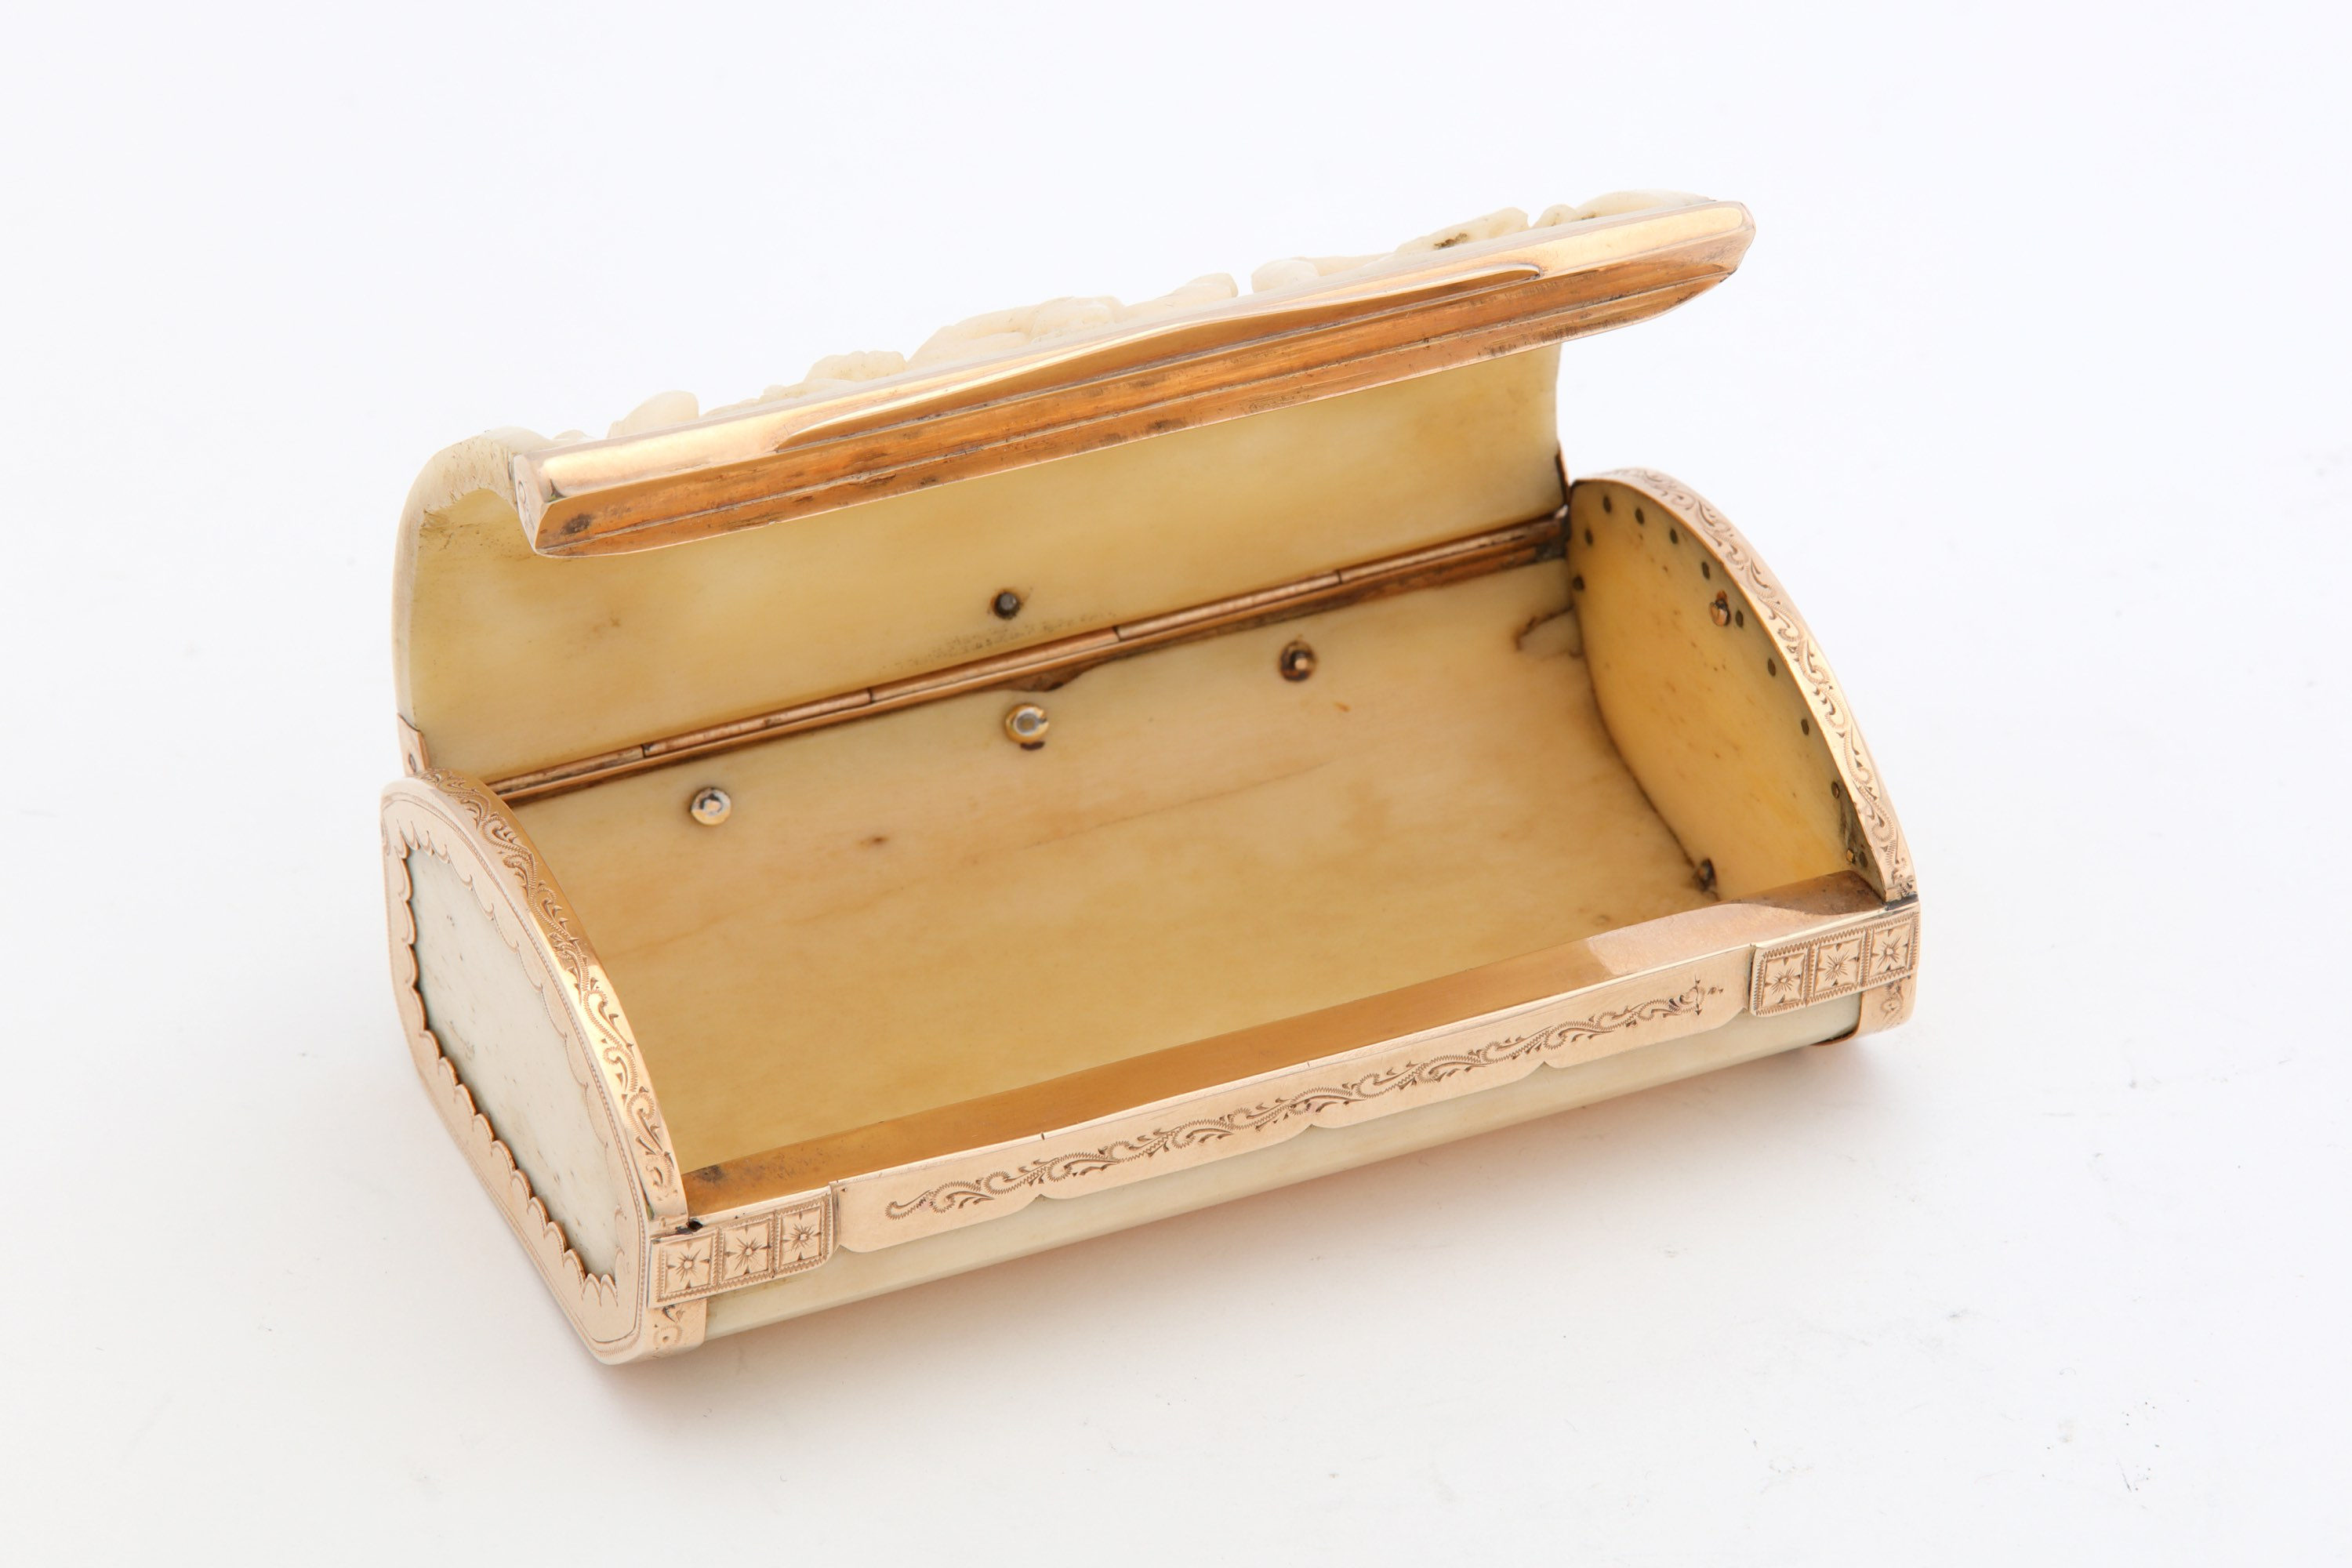 Lot 50 - A mid-18th century ivory and gold mounted snuff box, English circa 1740